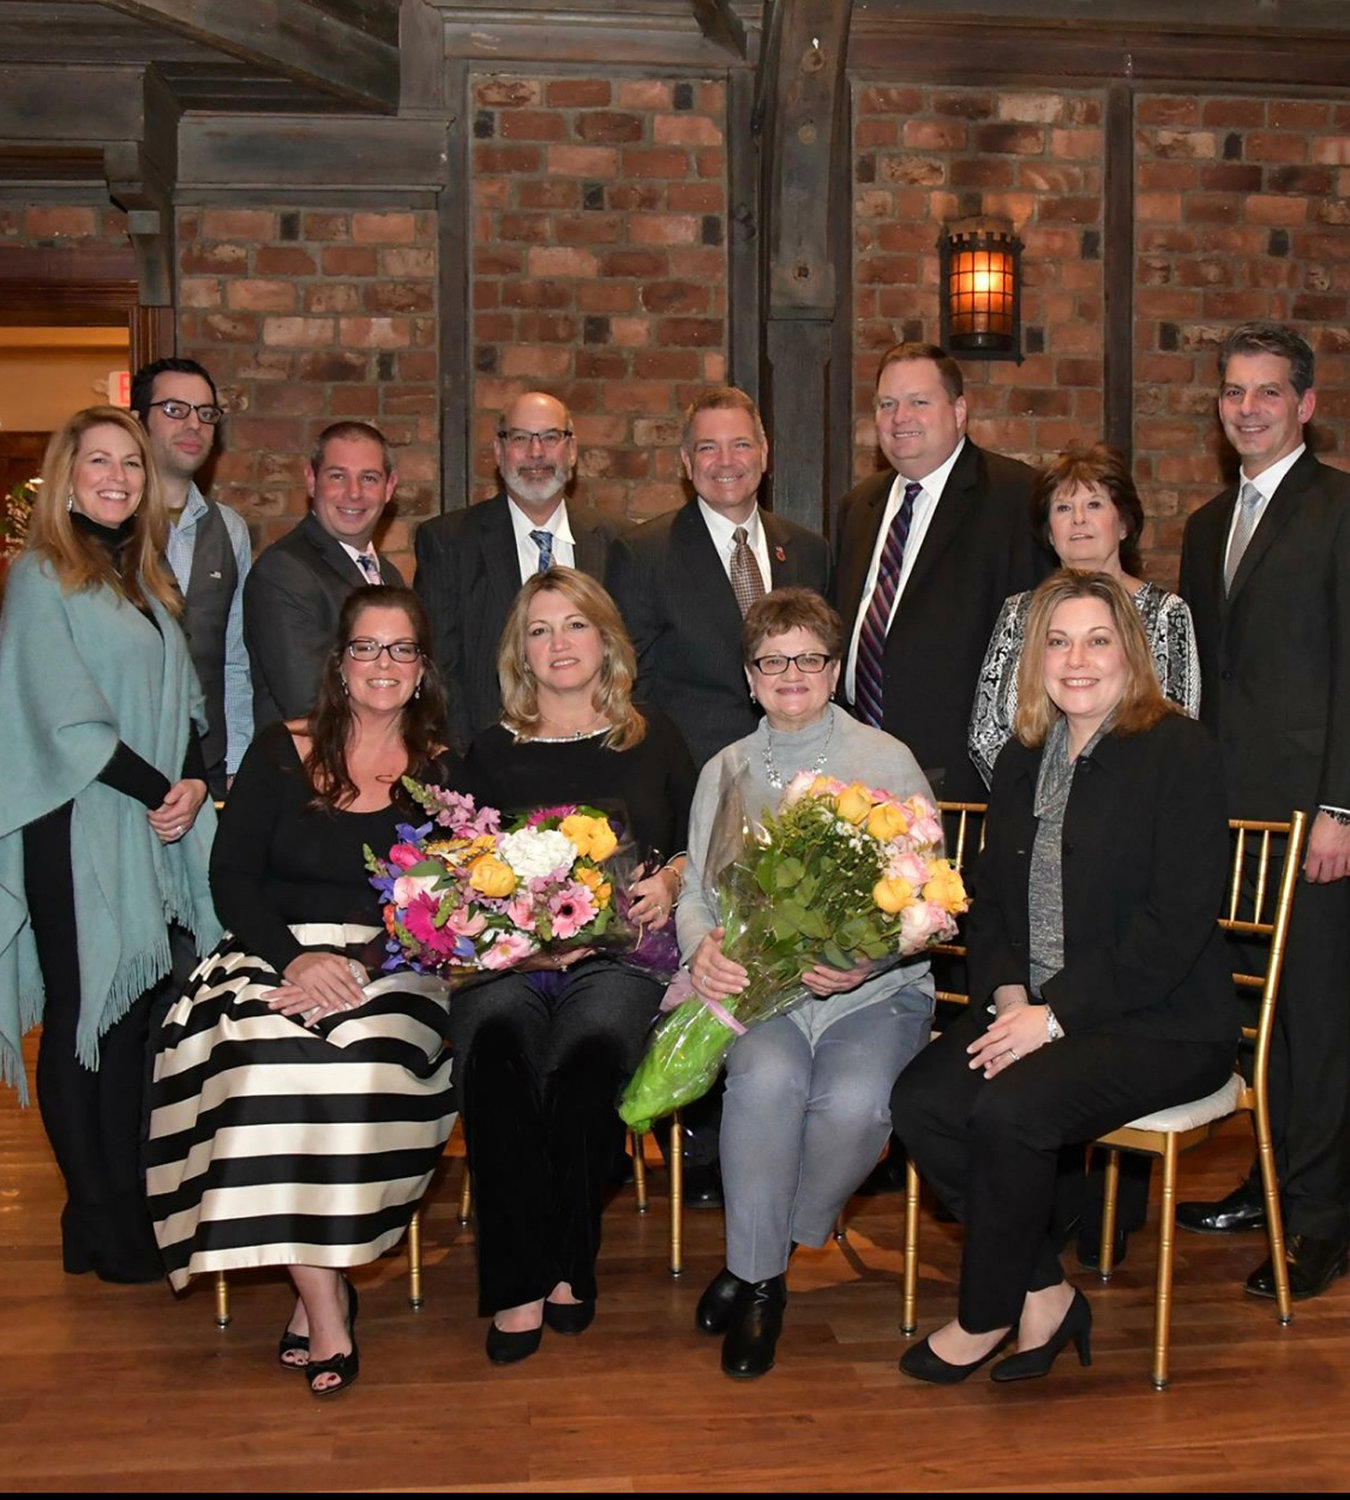 Tavolo Restaurant Wantagh Ny Wantagh Chamber Of Commerce Installs New Officers Herald